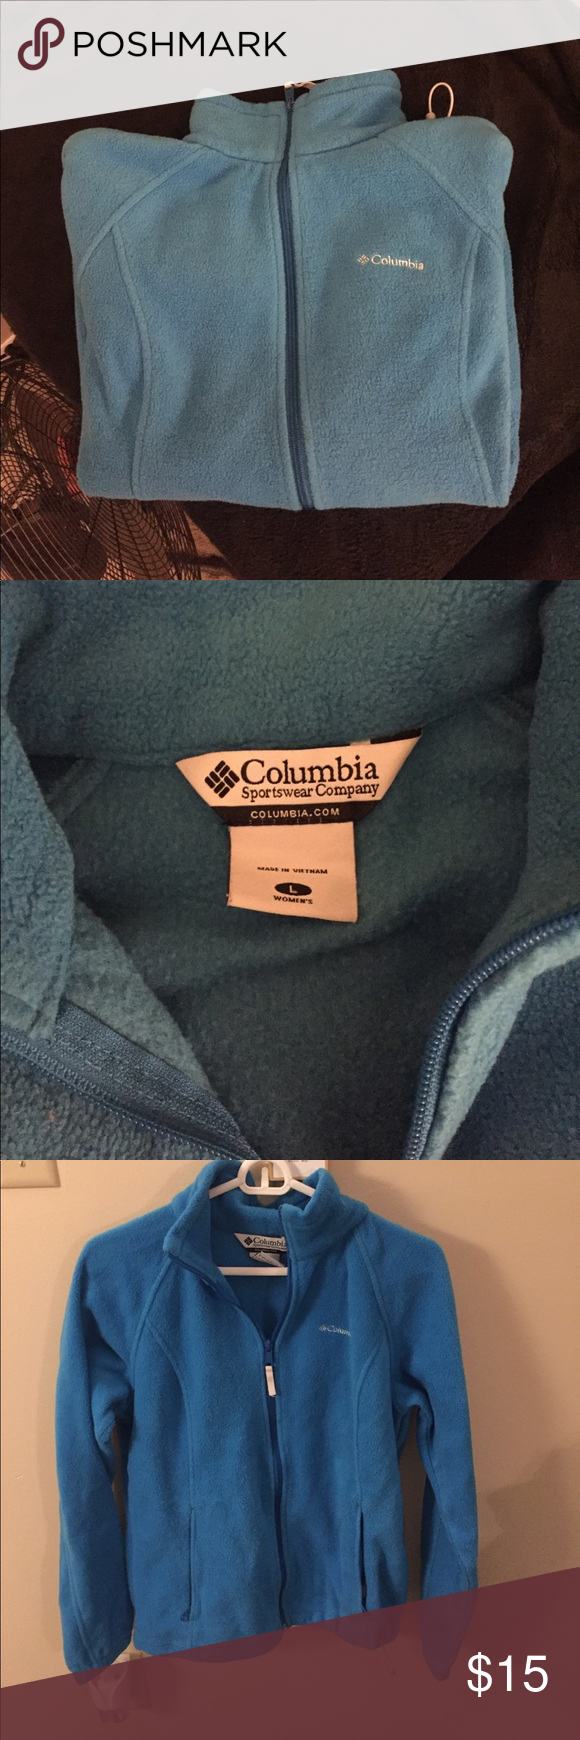 Columbia fleece jacket columbia cozy and zip